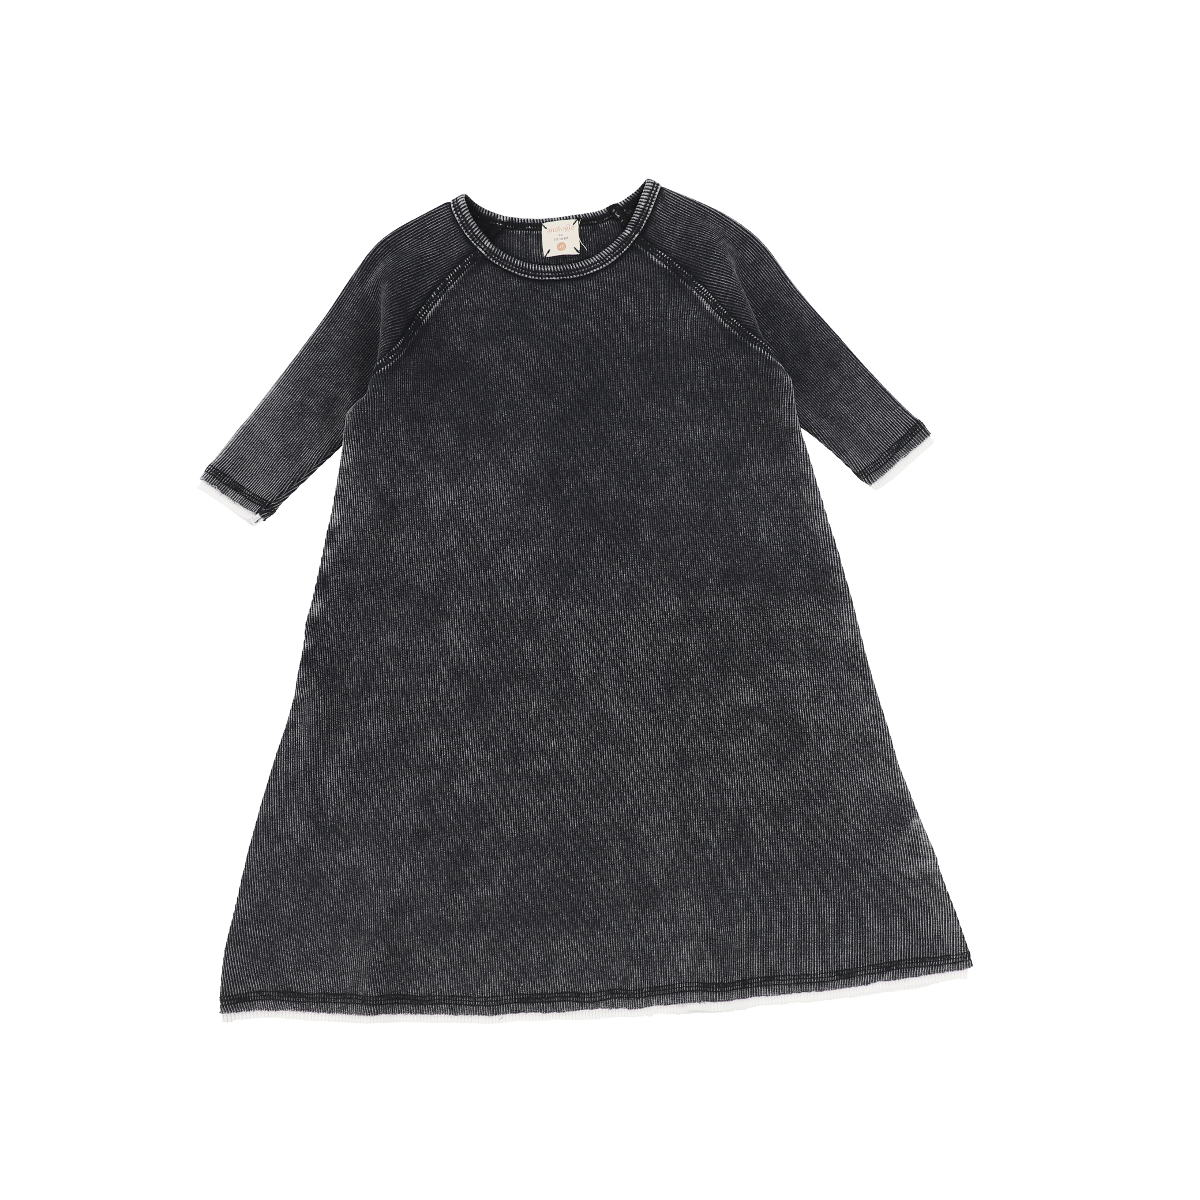 Analogie Black Wash Denim Three Quarter Sleeve Dress